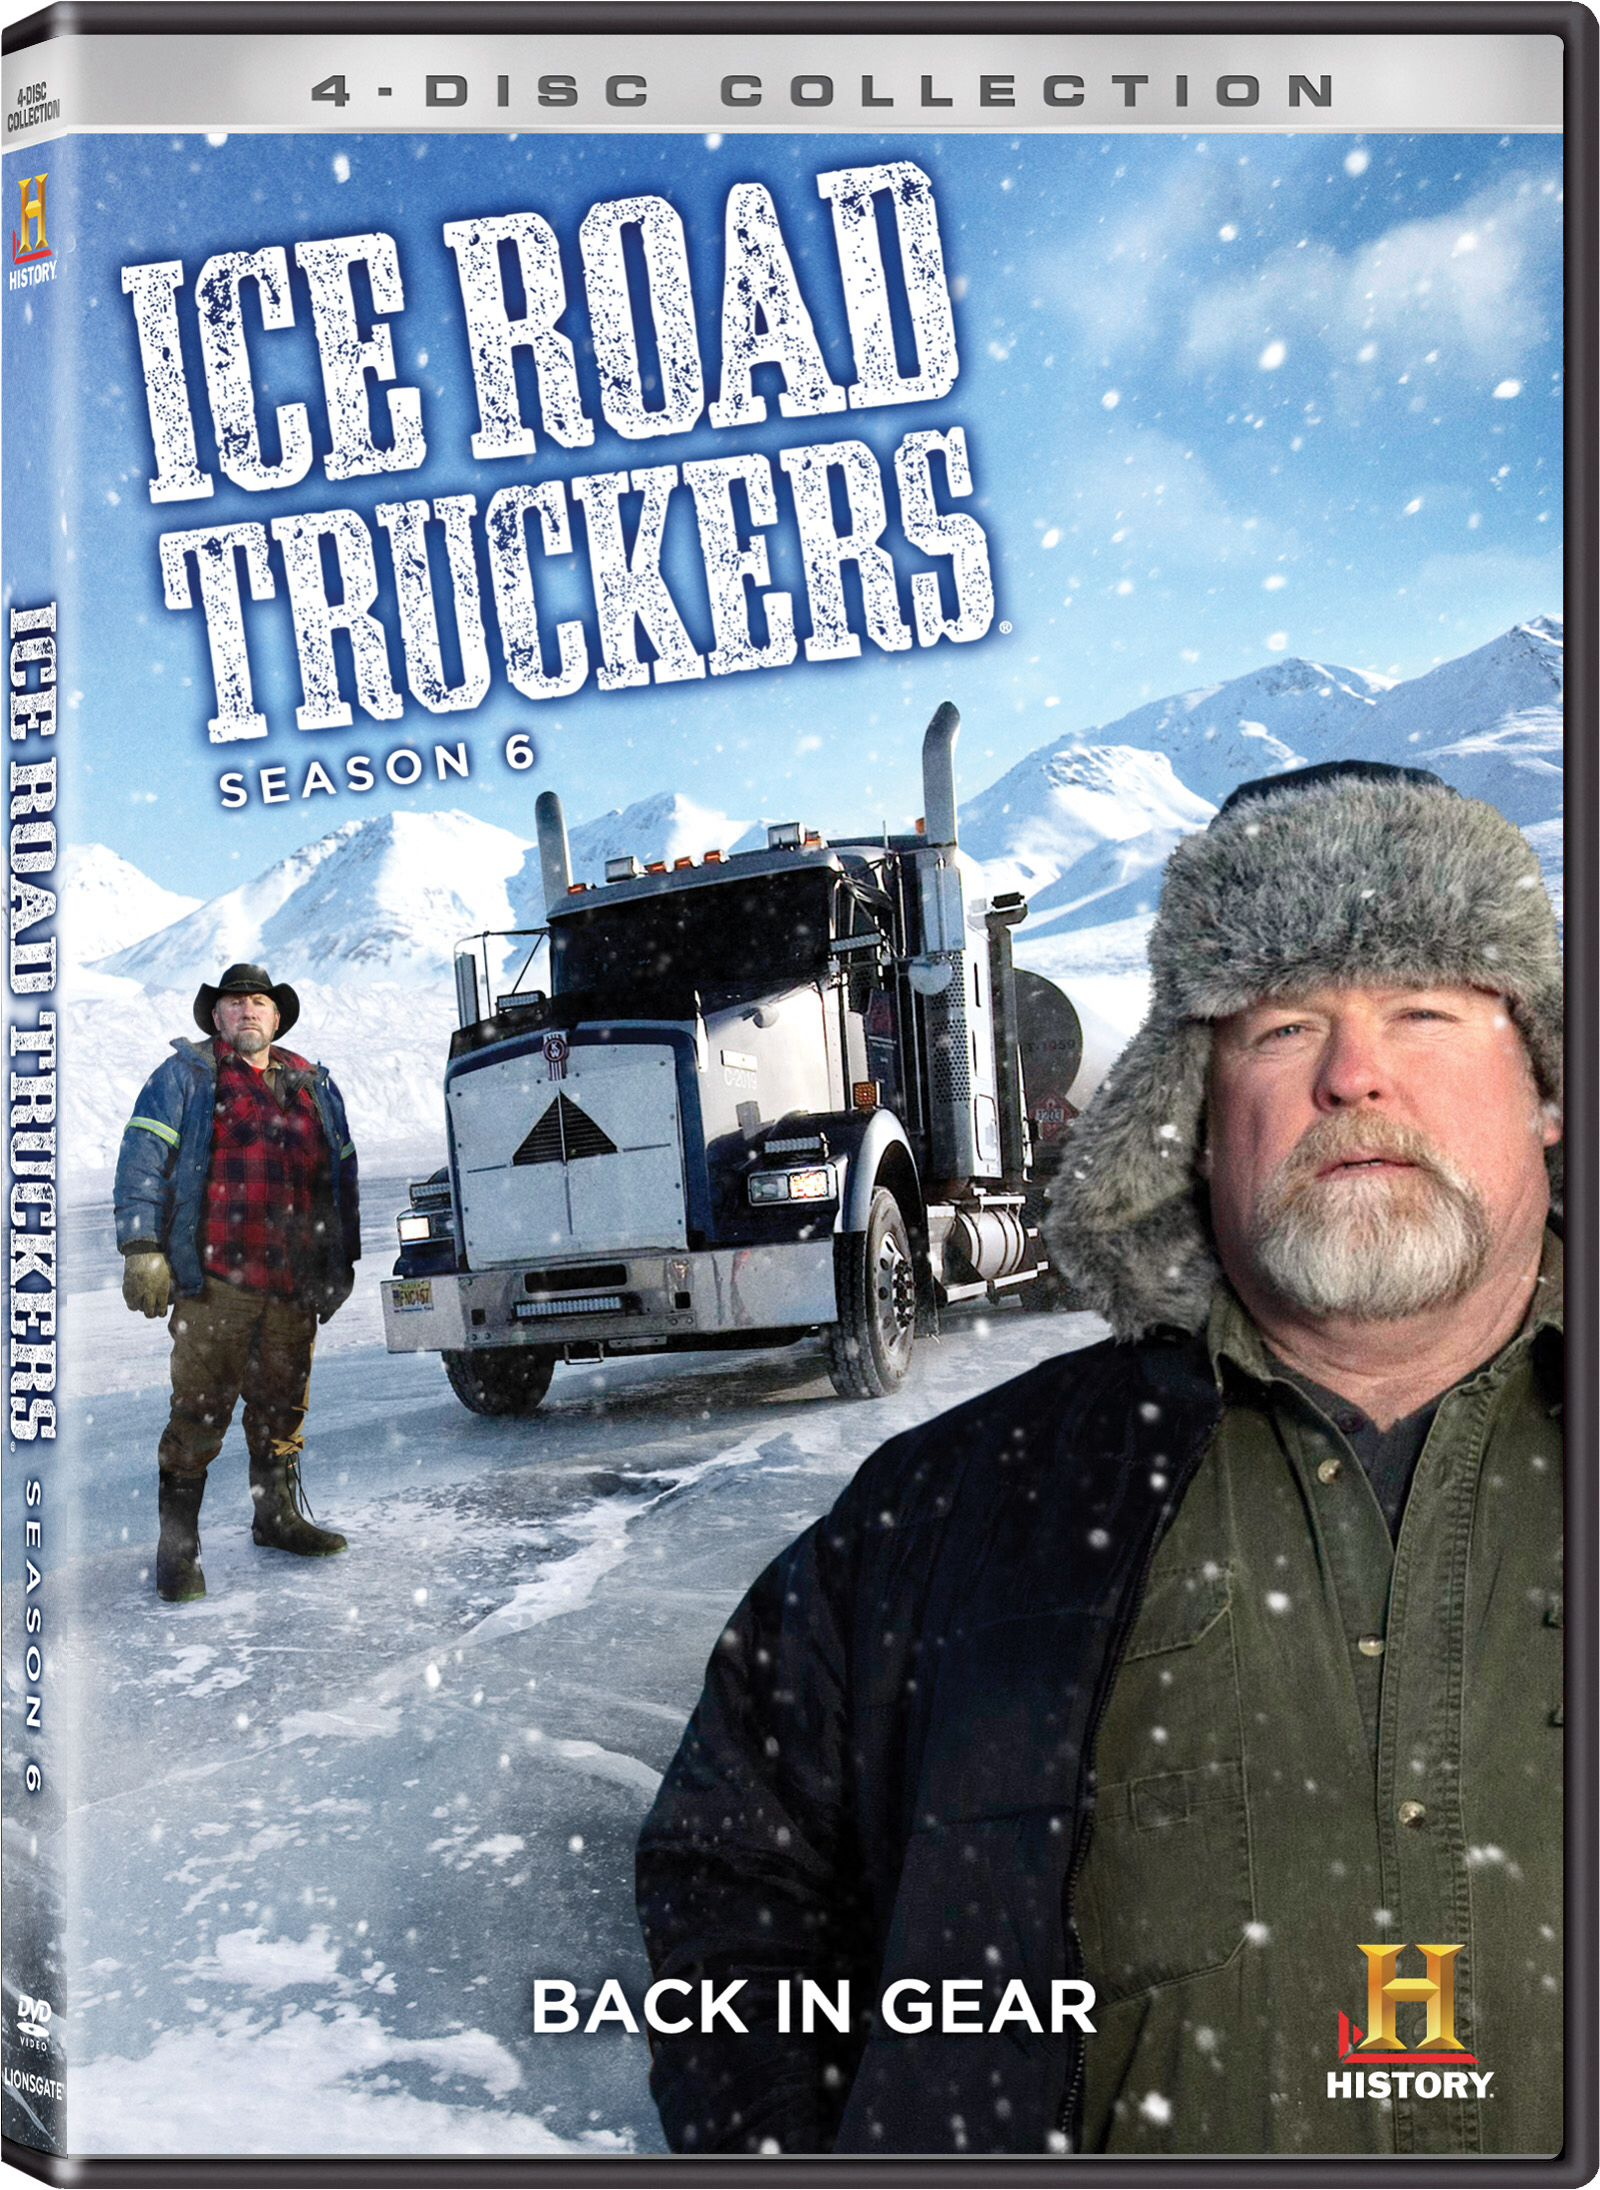 Pin by Steve france on Ice road truckers | Lisa kelly